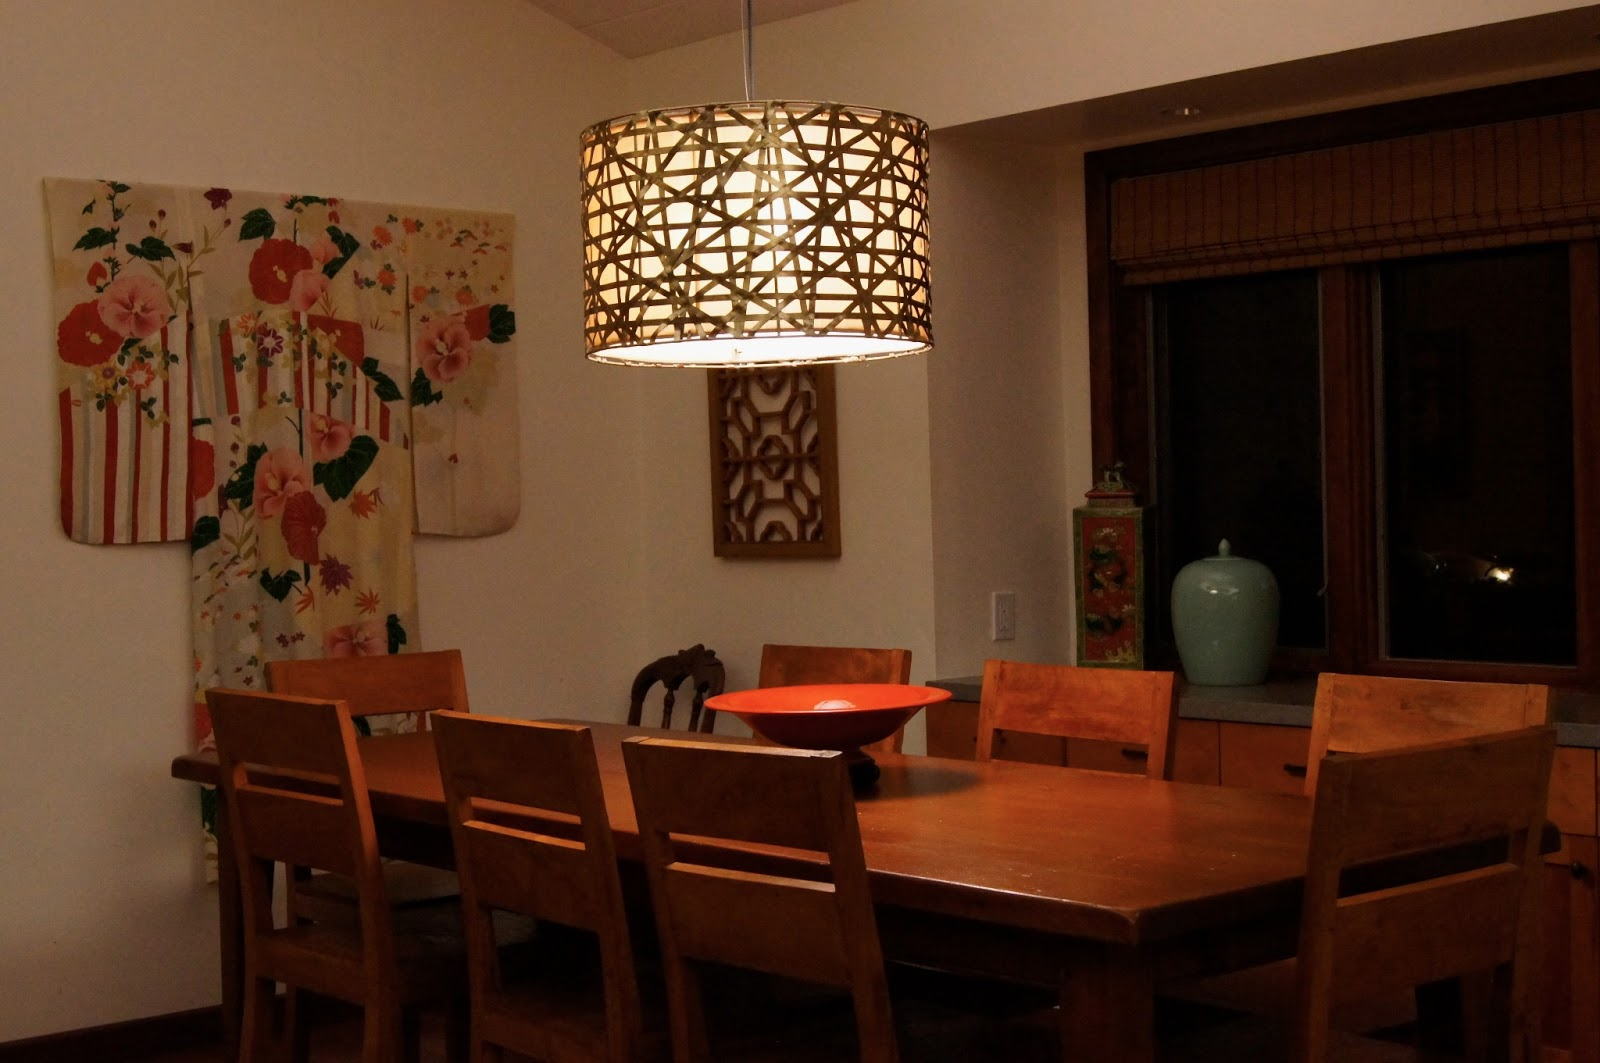 Price Style & Design: New Dining Room Light Fixture Installed!